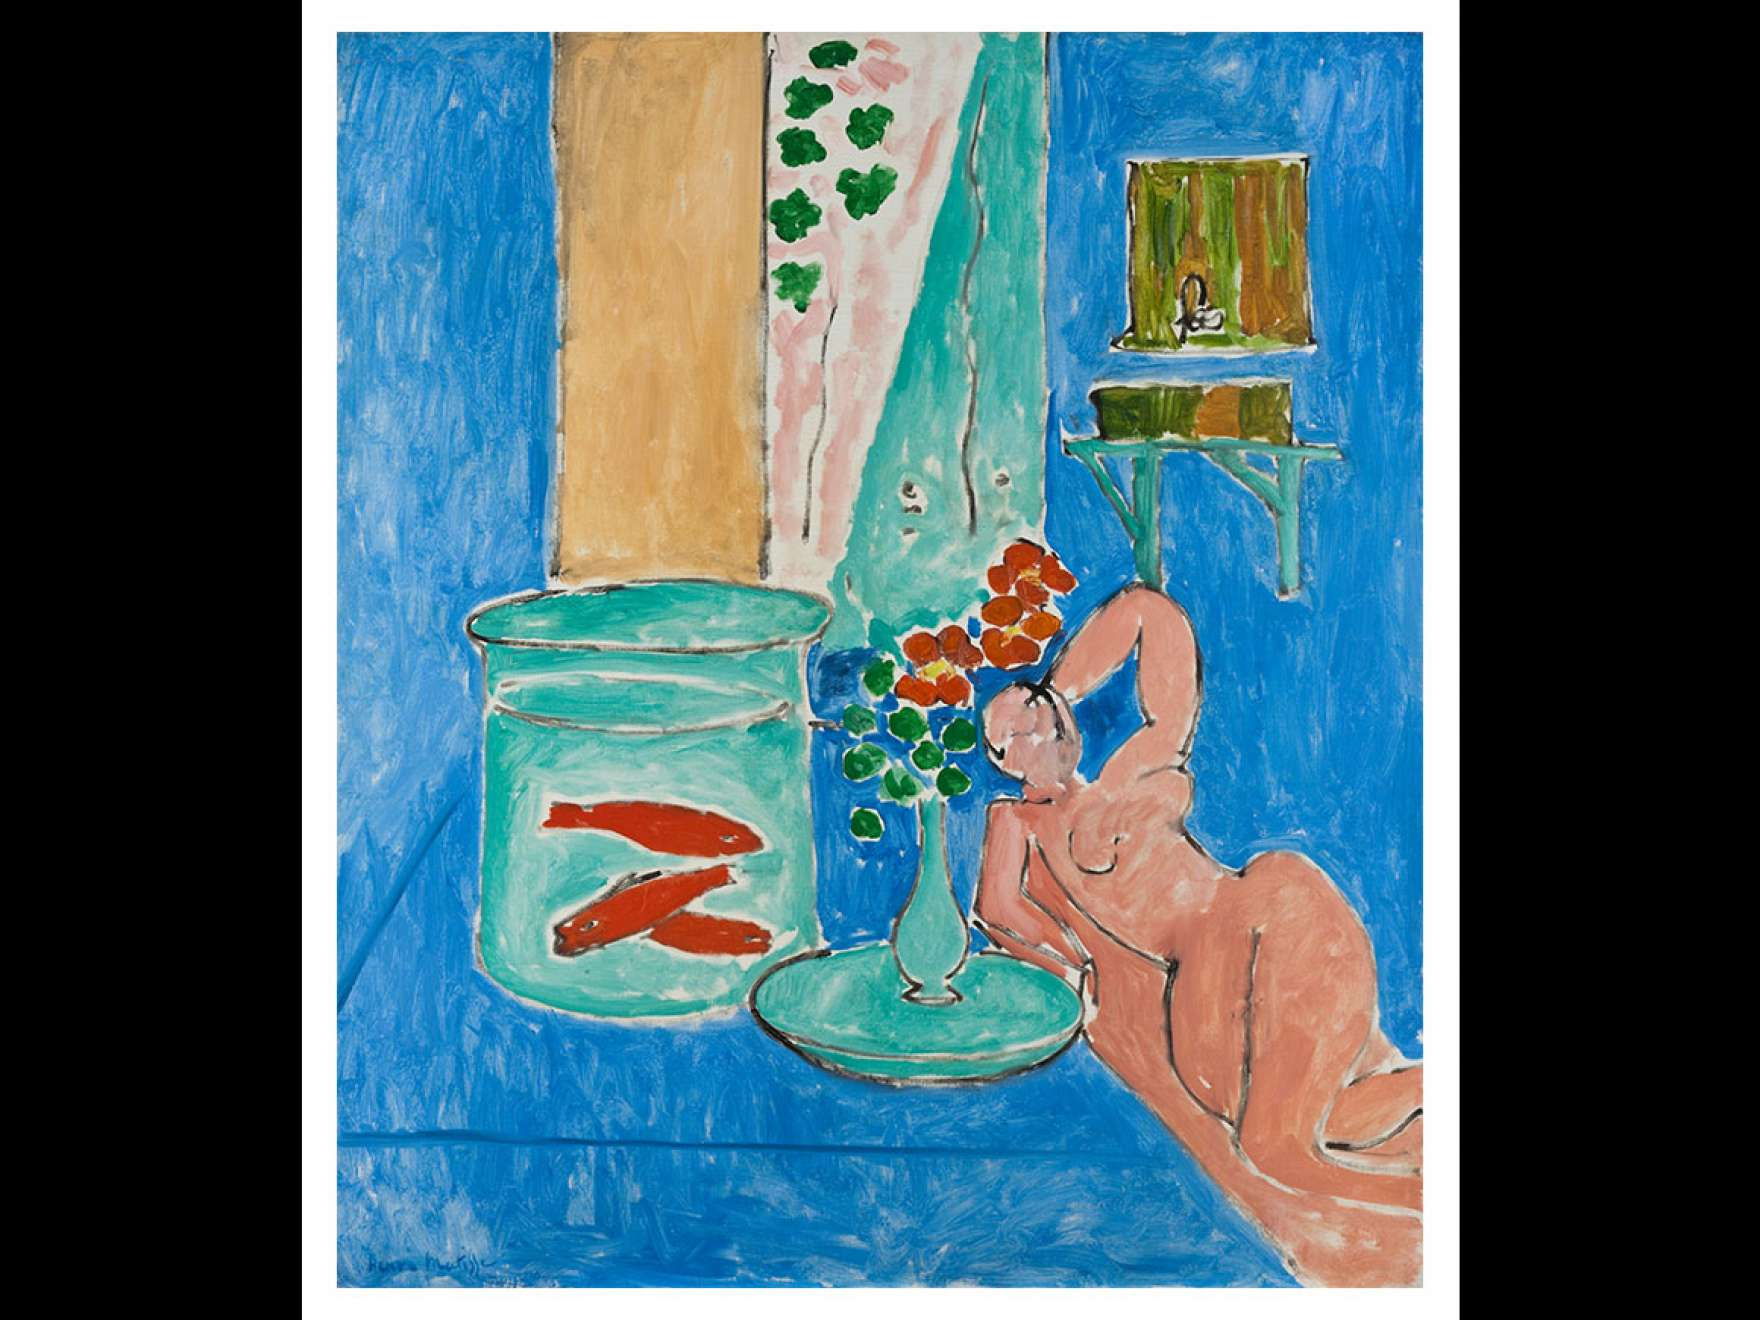 Henri Matisse's painting, Goldfish and Sculpture, 1912